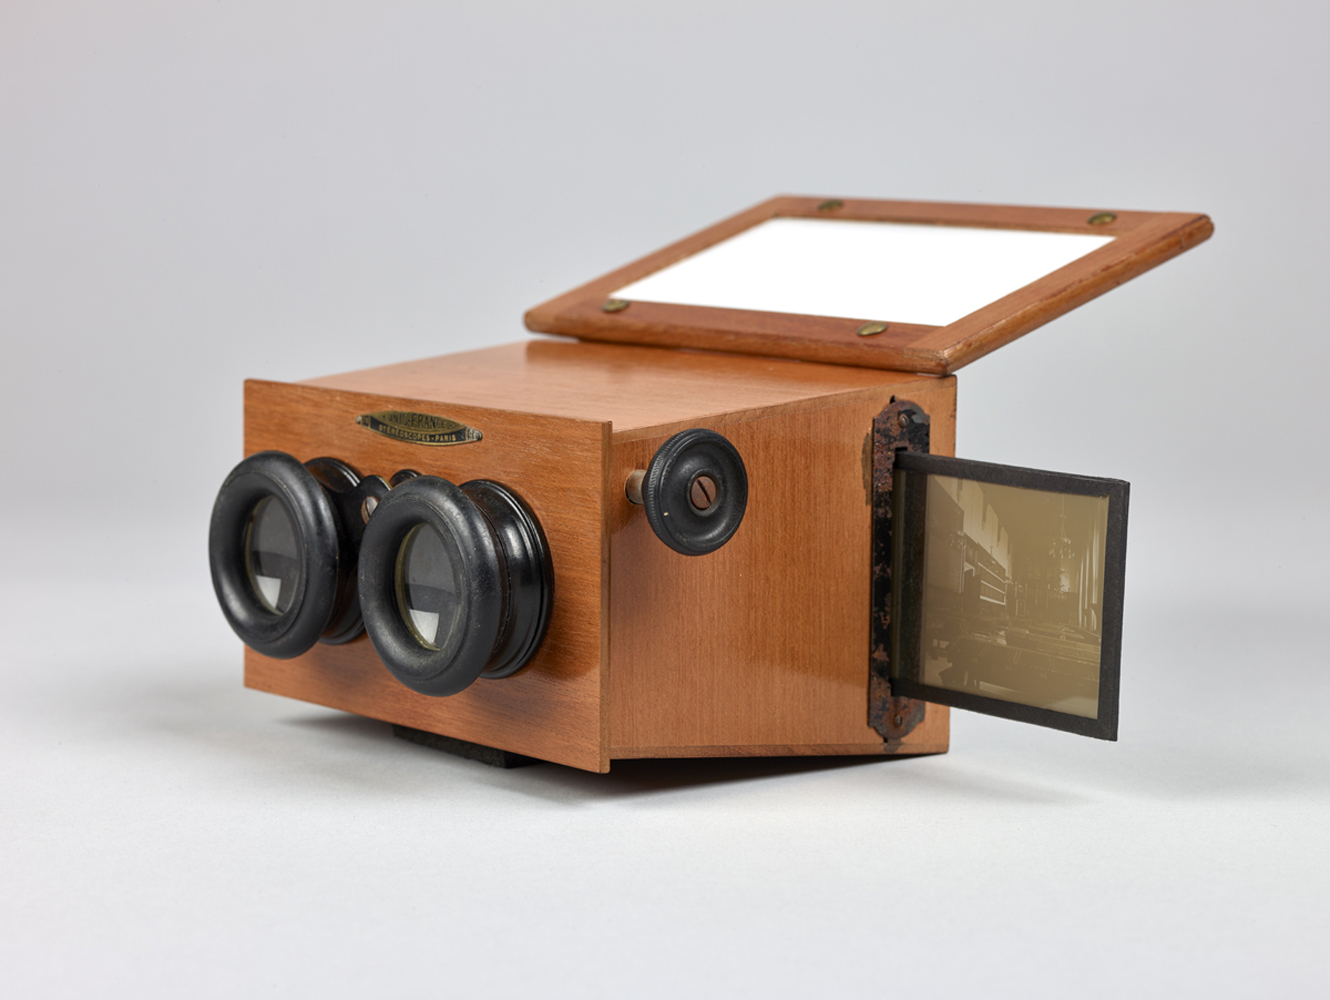 http://www.davidrowan.org/files/gimgs/54_ke-archive-stereoscope-viewer-two-20.jpg